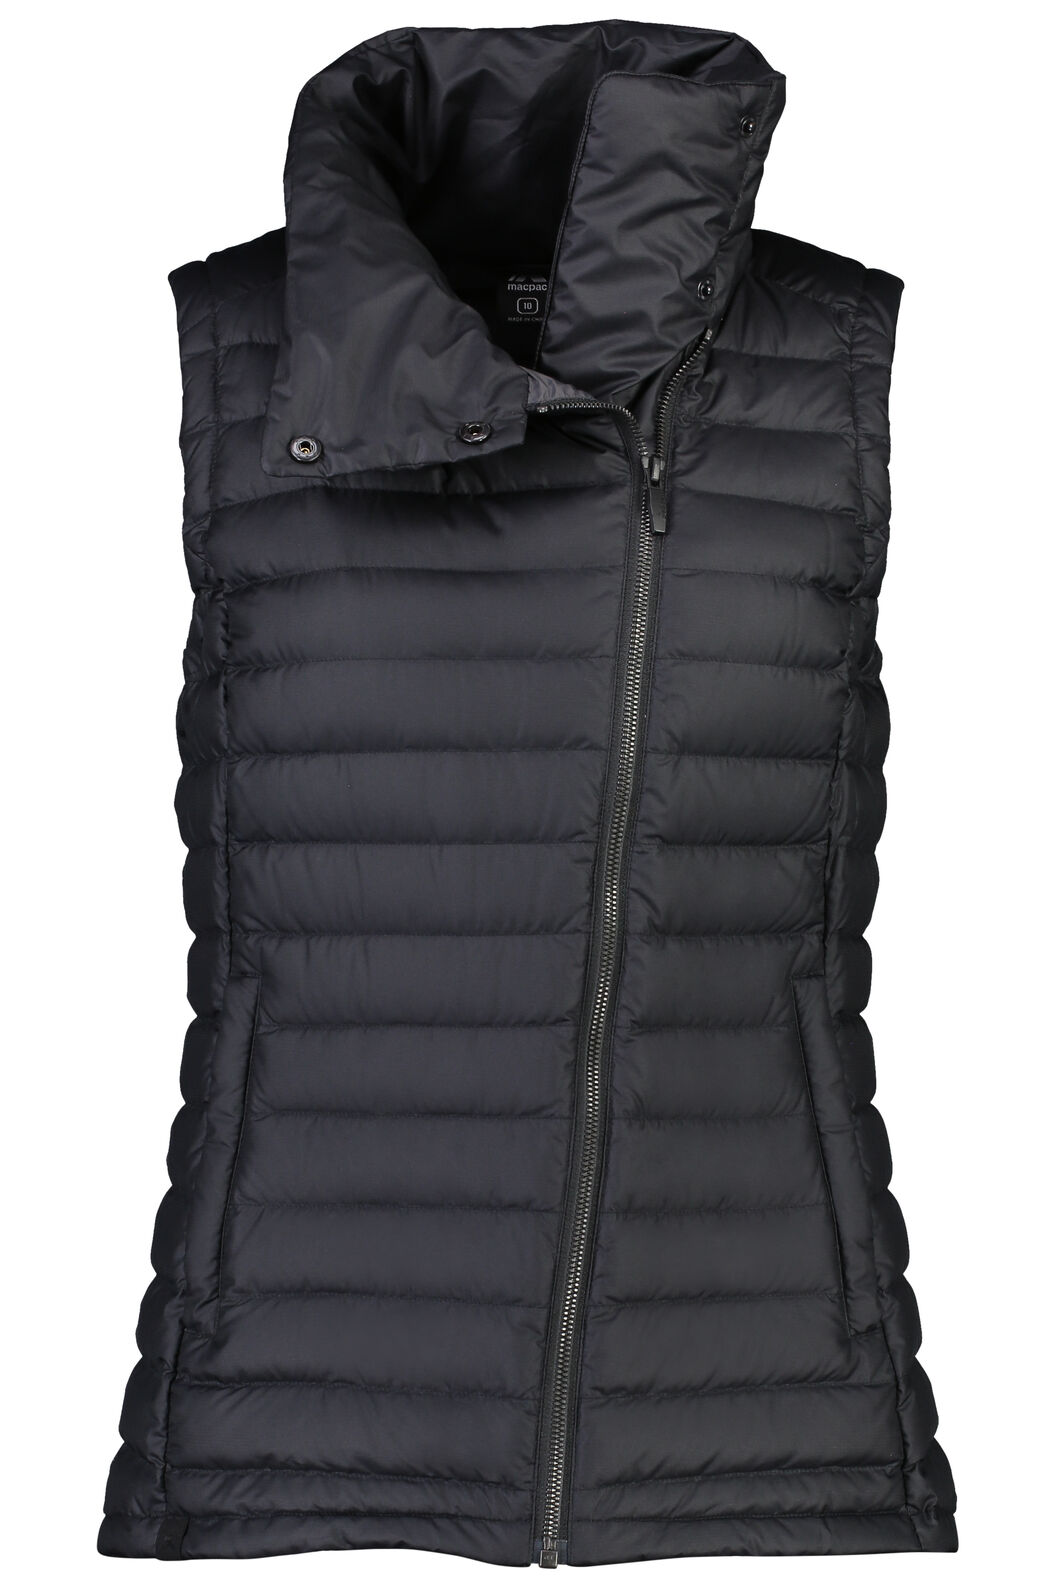 Macpac Demi Down Vest - Women's, Black, hi-res